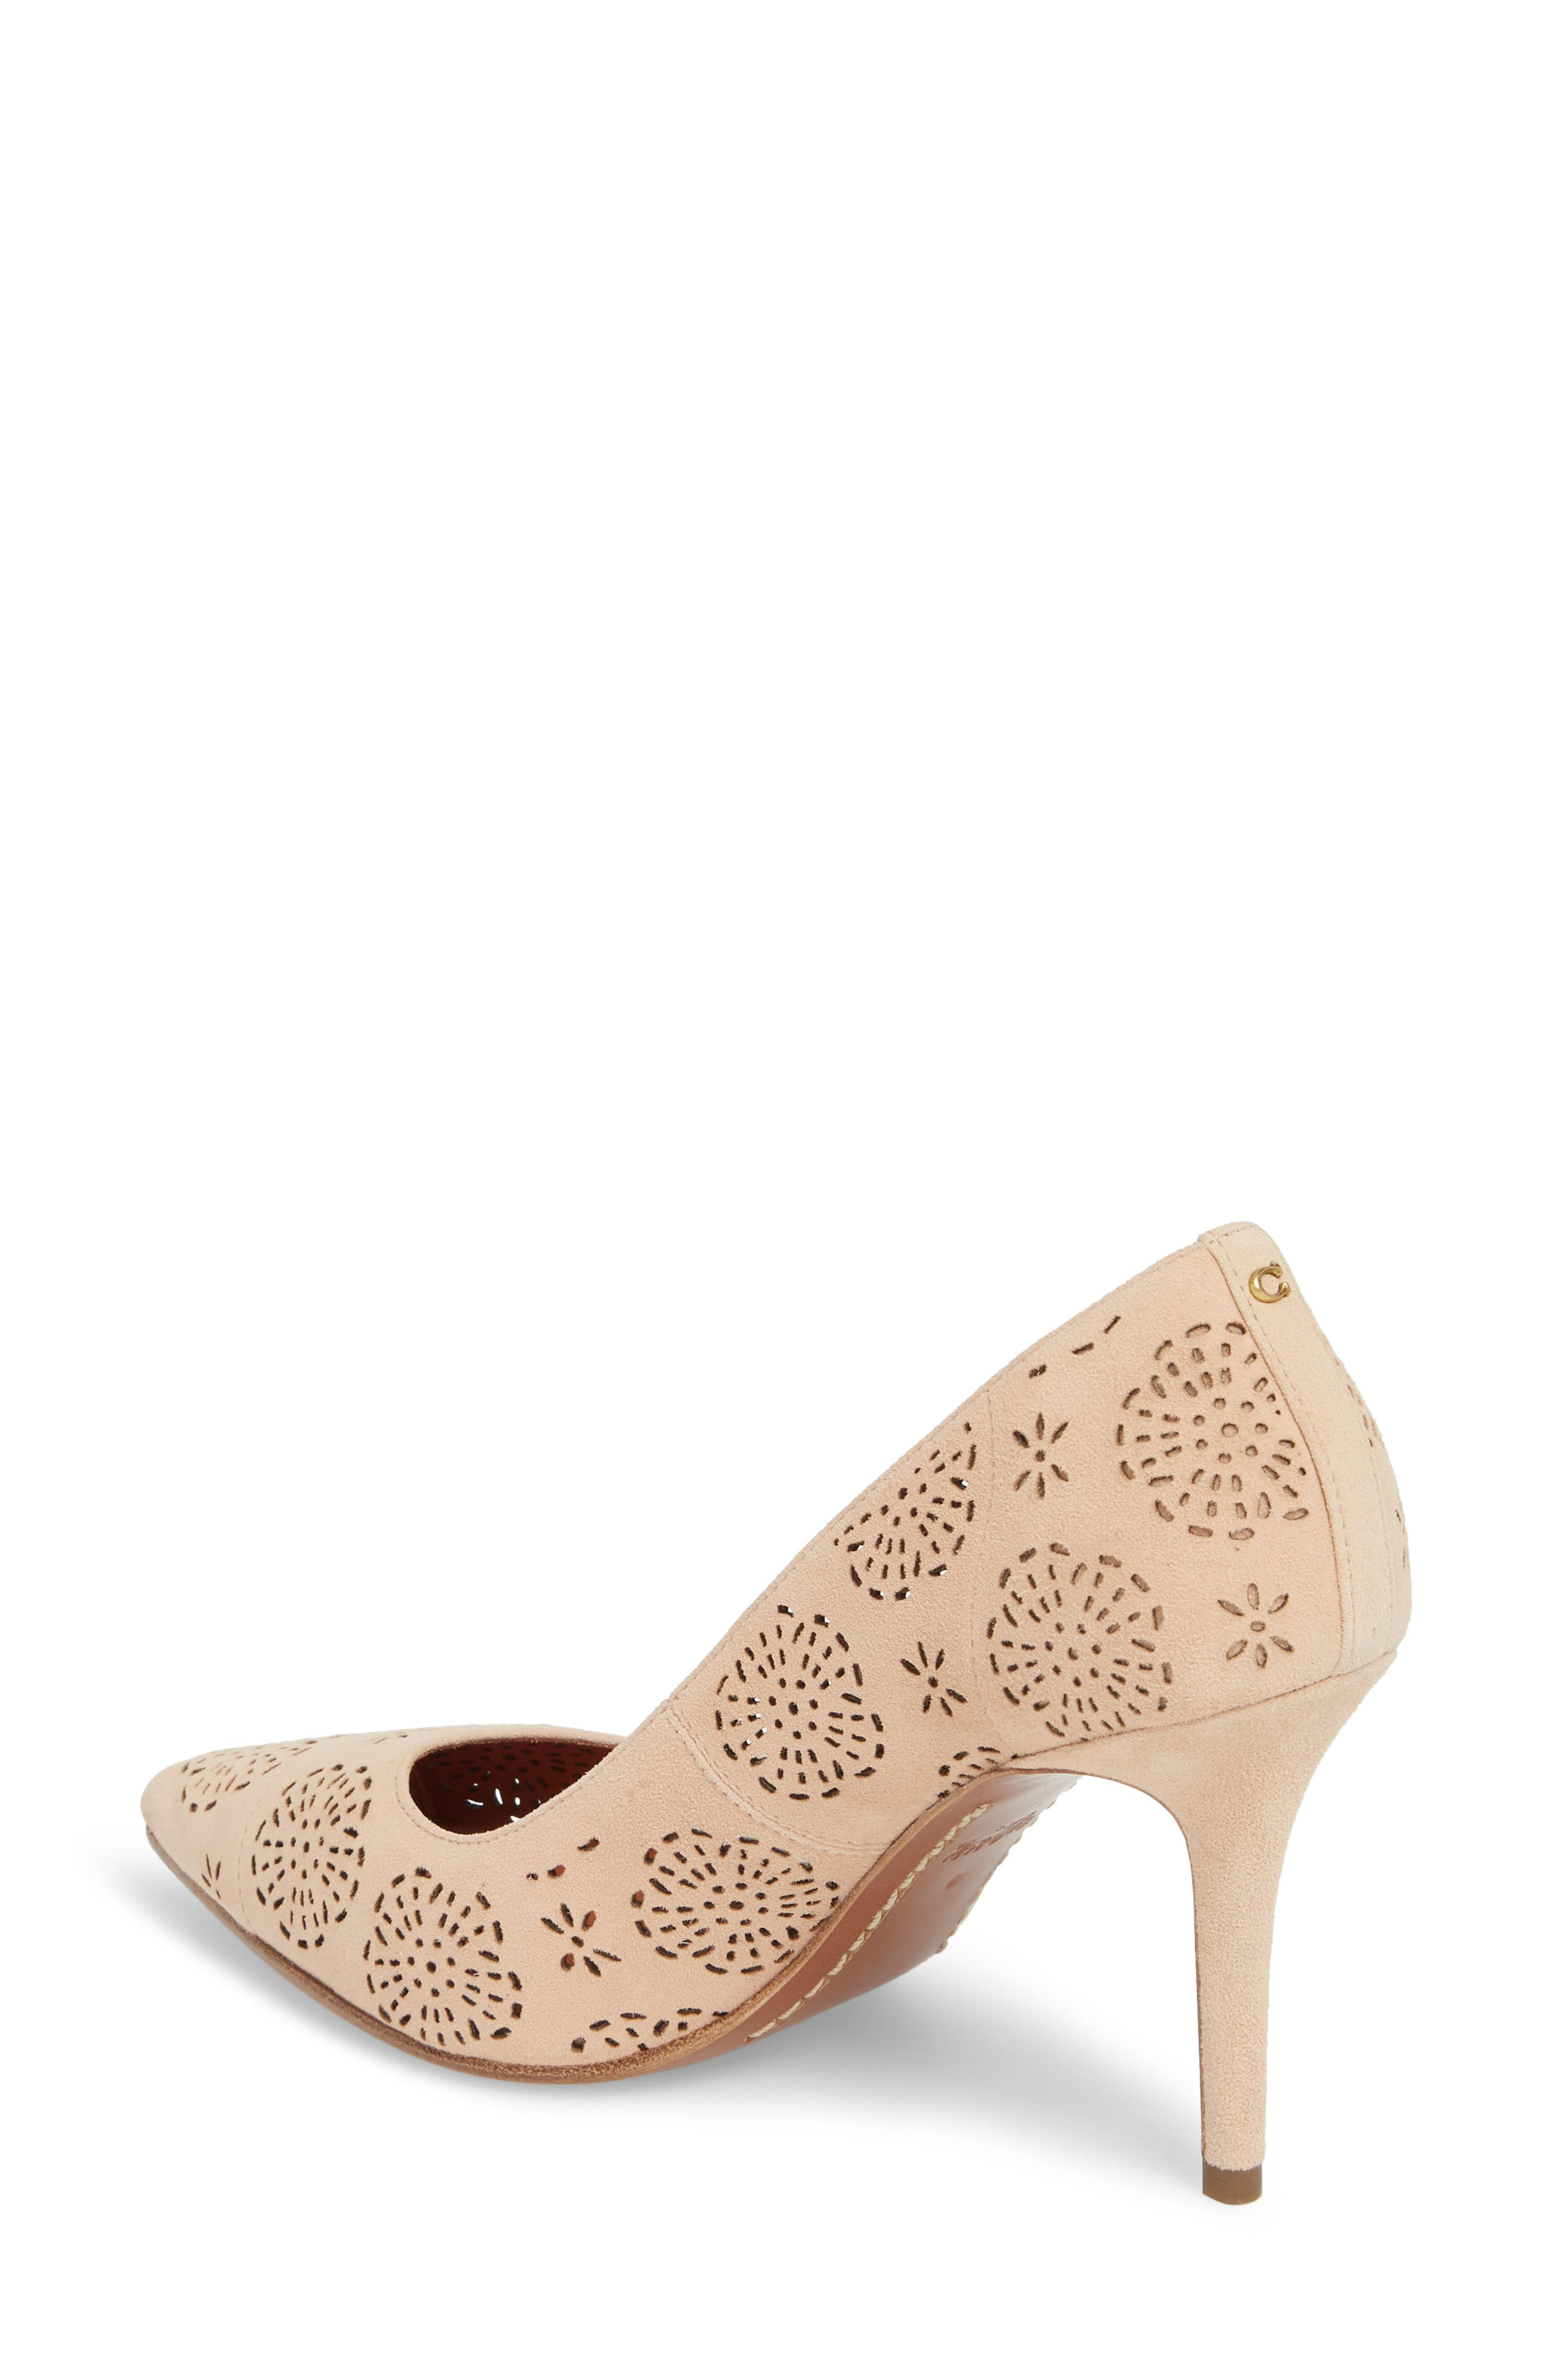 Waverly Tea Rose Perforated Pump,                             Alternate thumbnail 2, color,                             Beachwood Leather